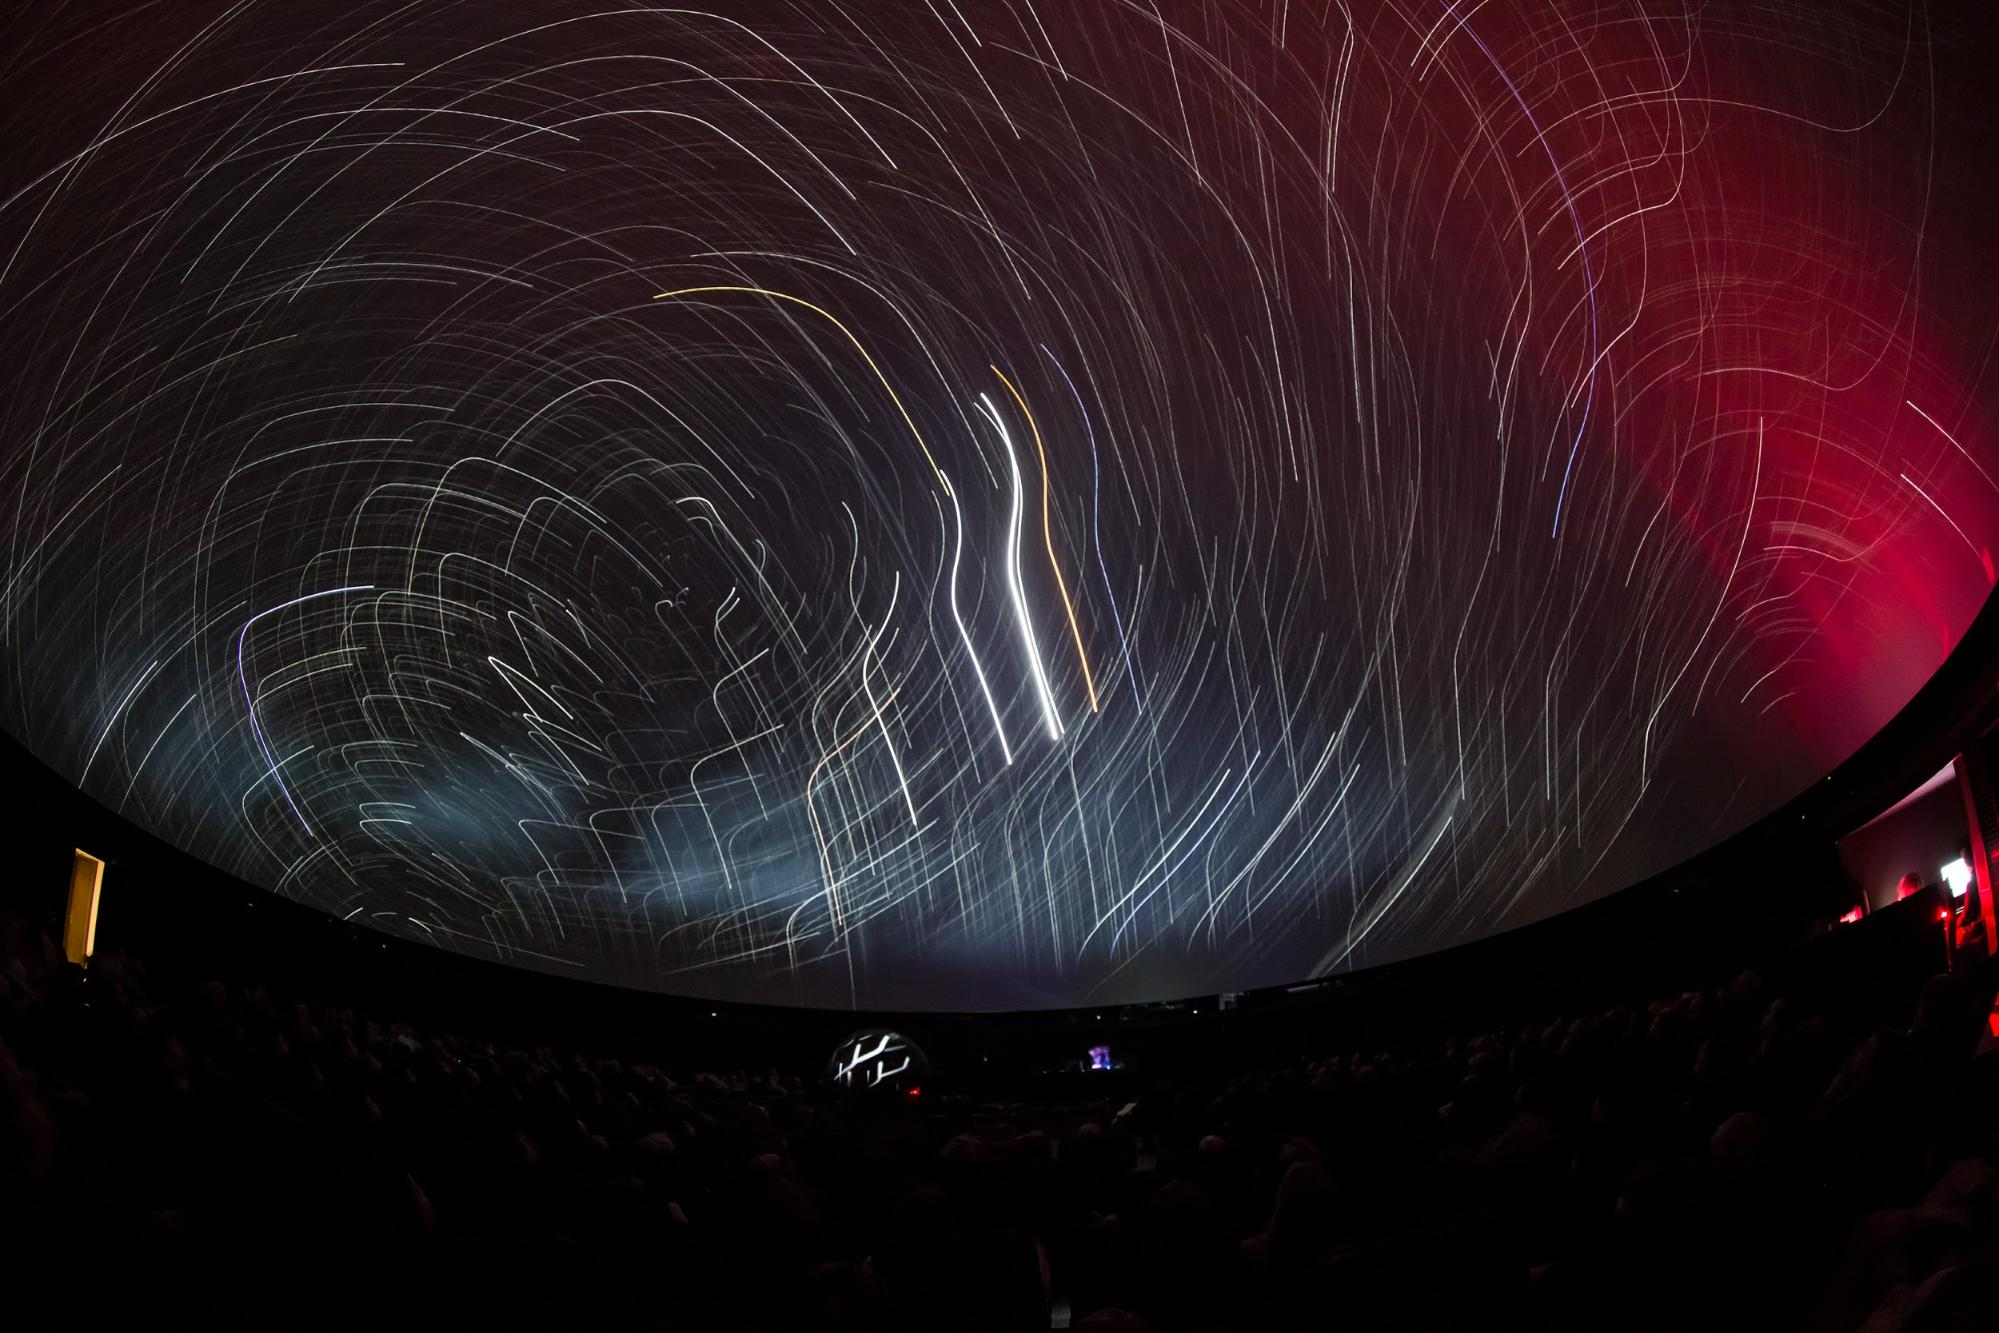 photo credit Frank Michael Arndt for Stiftung Planetarium Berlin